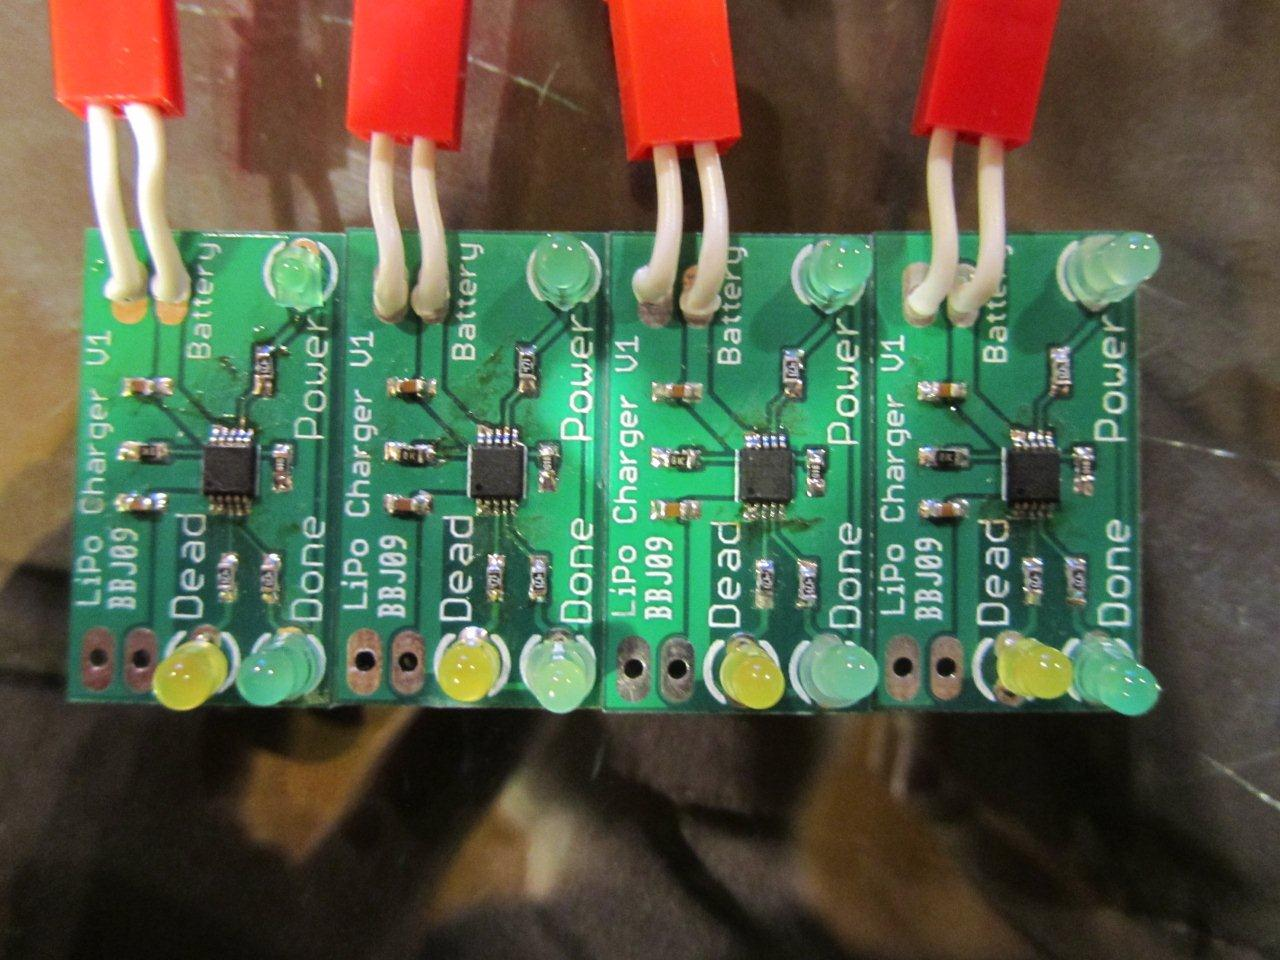 Assembled LiPo chargers